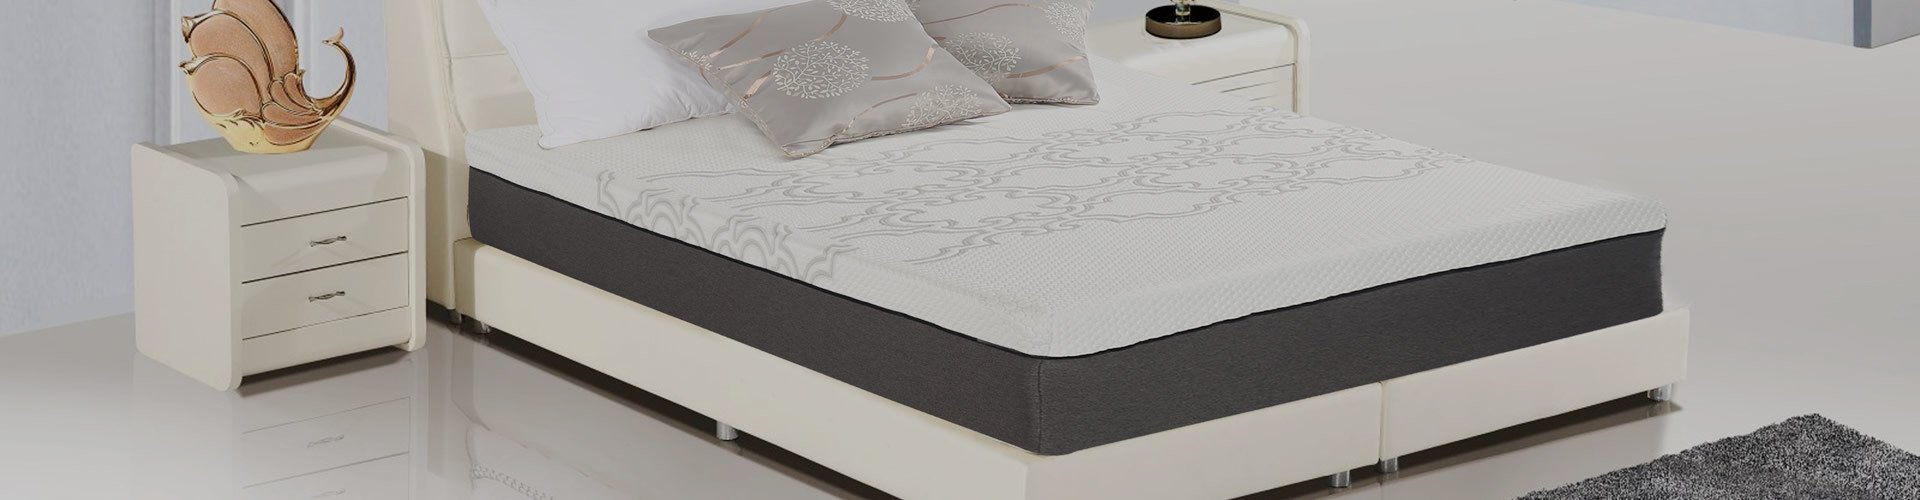 Best Traditional Mattress 10 Best Mattresses Under 300 Reviewed In Detail Jun 2019